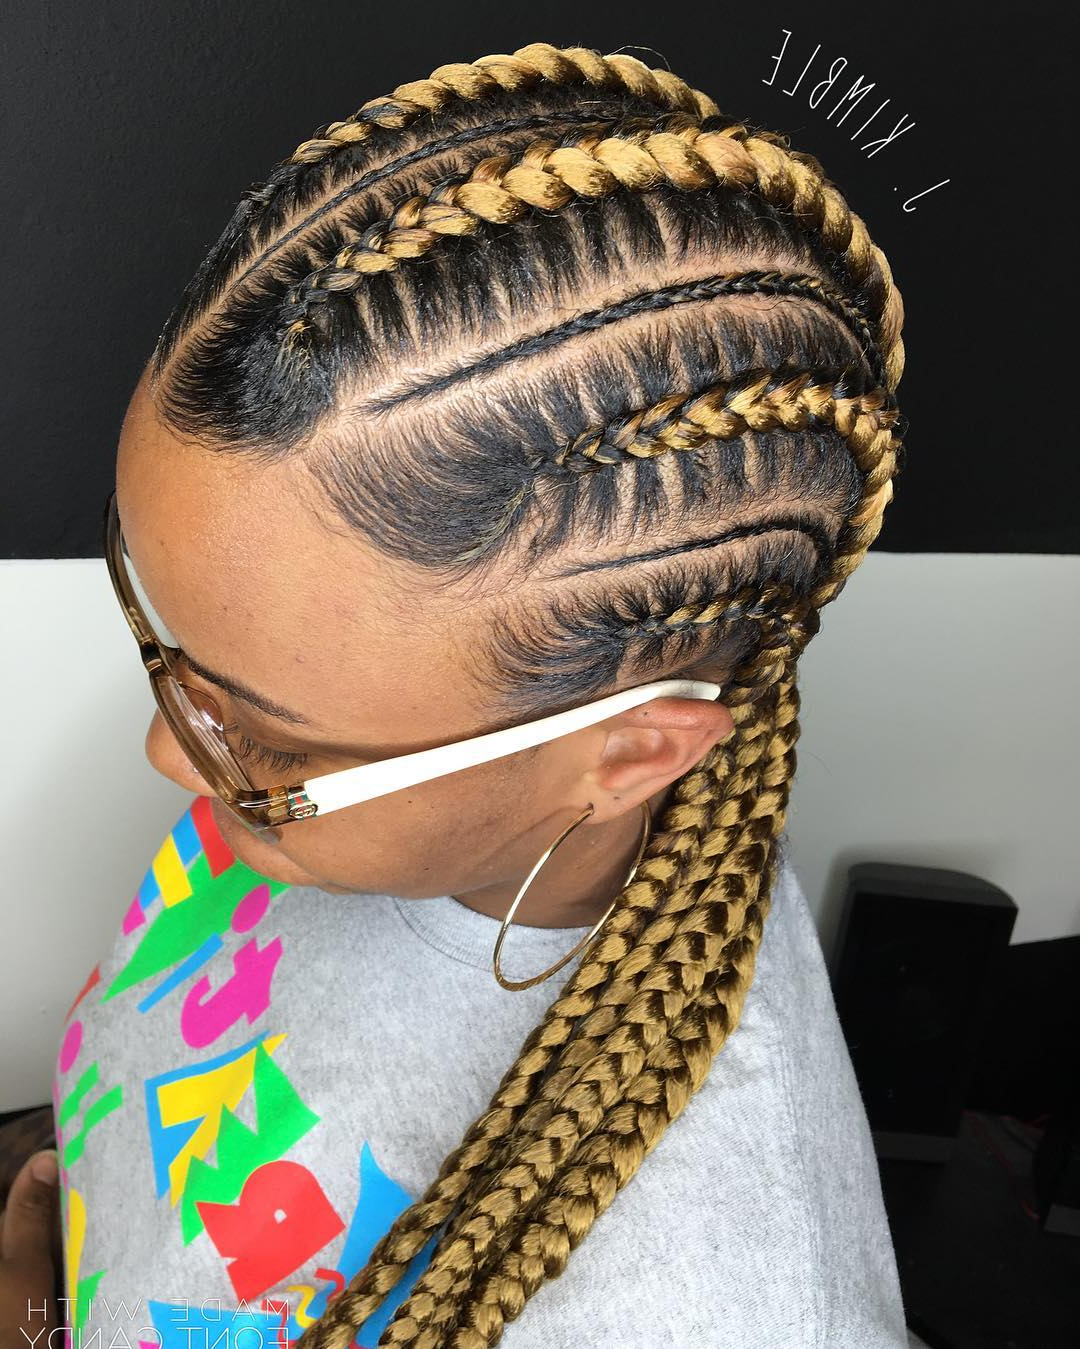 70 Best Black Braided Hairstyles That Turn Heads In 2019 For Newest Forward Braided Hairstyles With Hair Wrap (View 4 of 20)